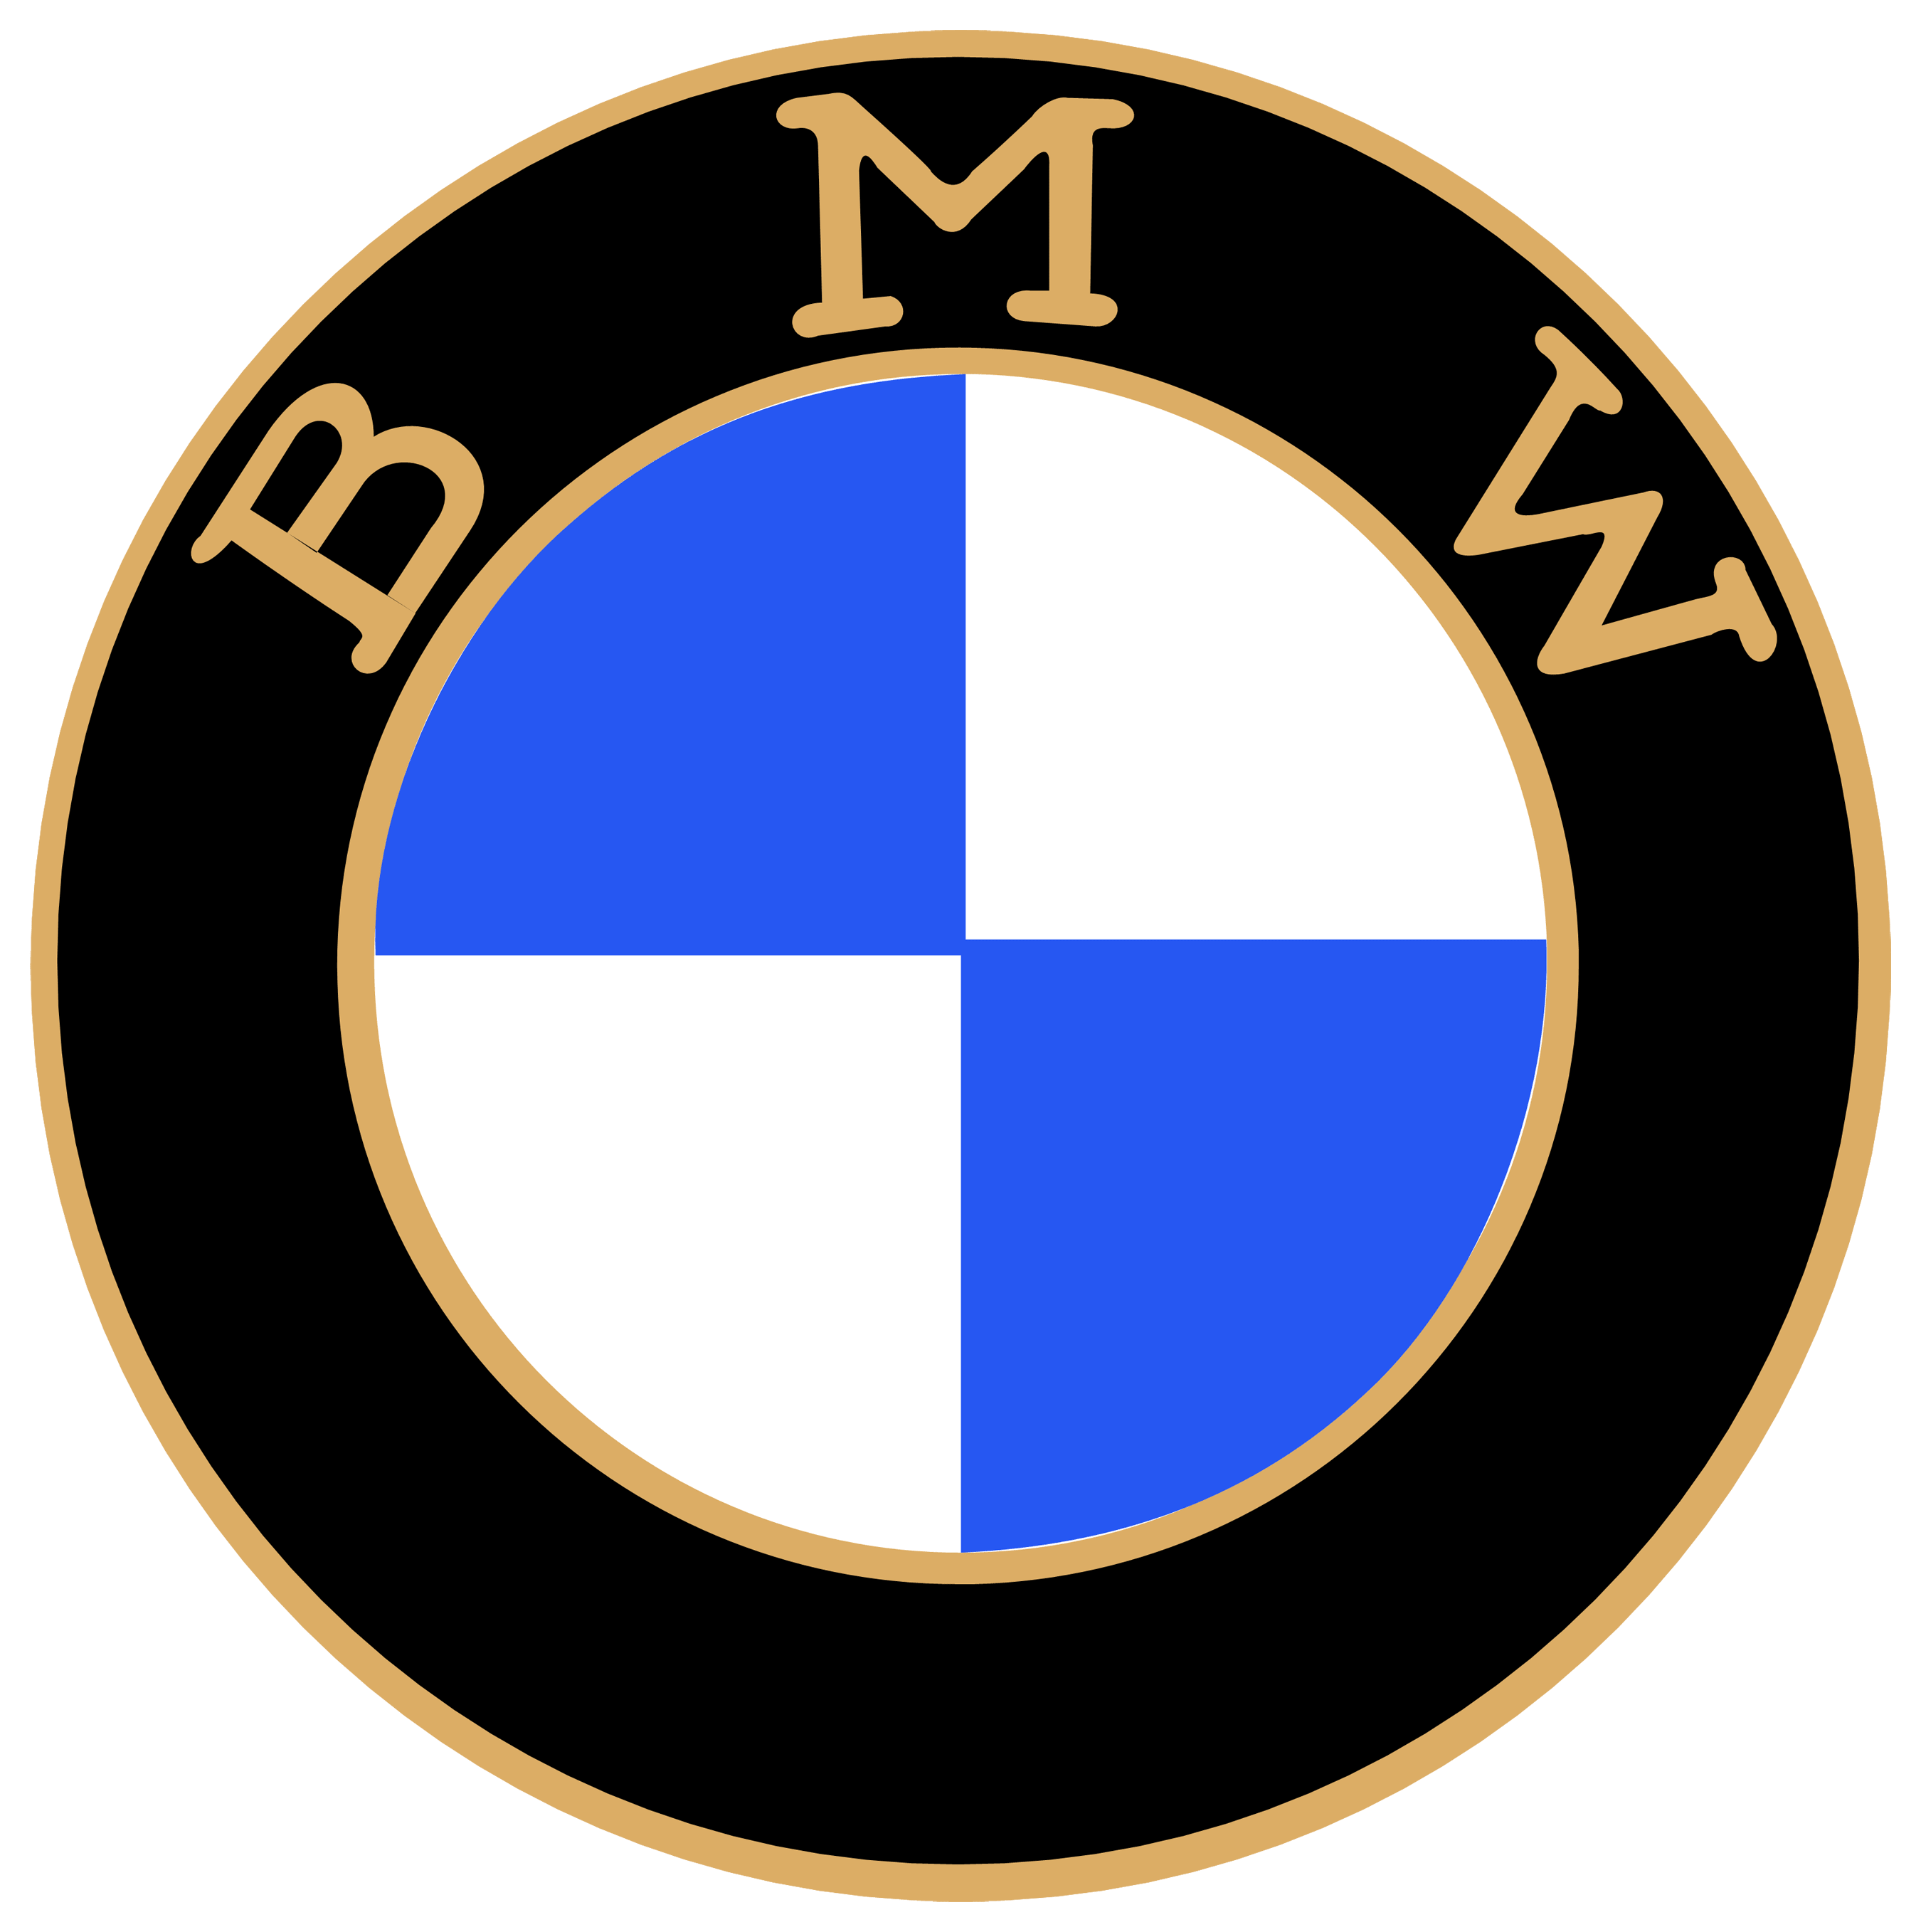 Old BMW Logo | Motorcycle Logos